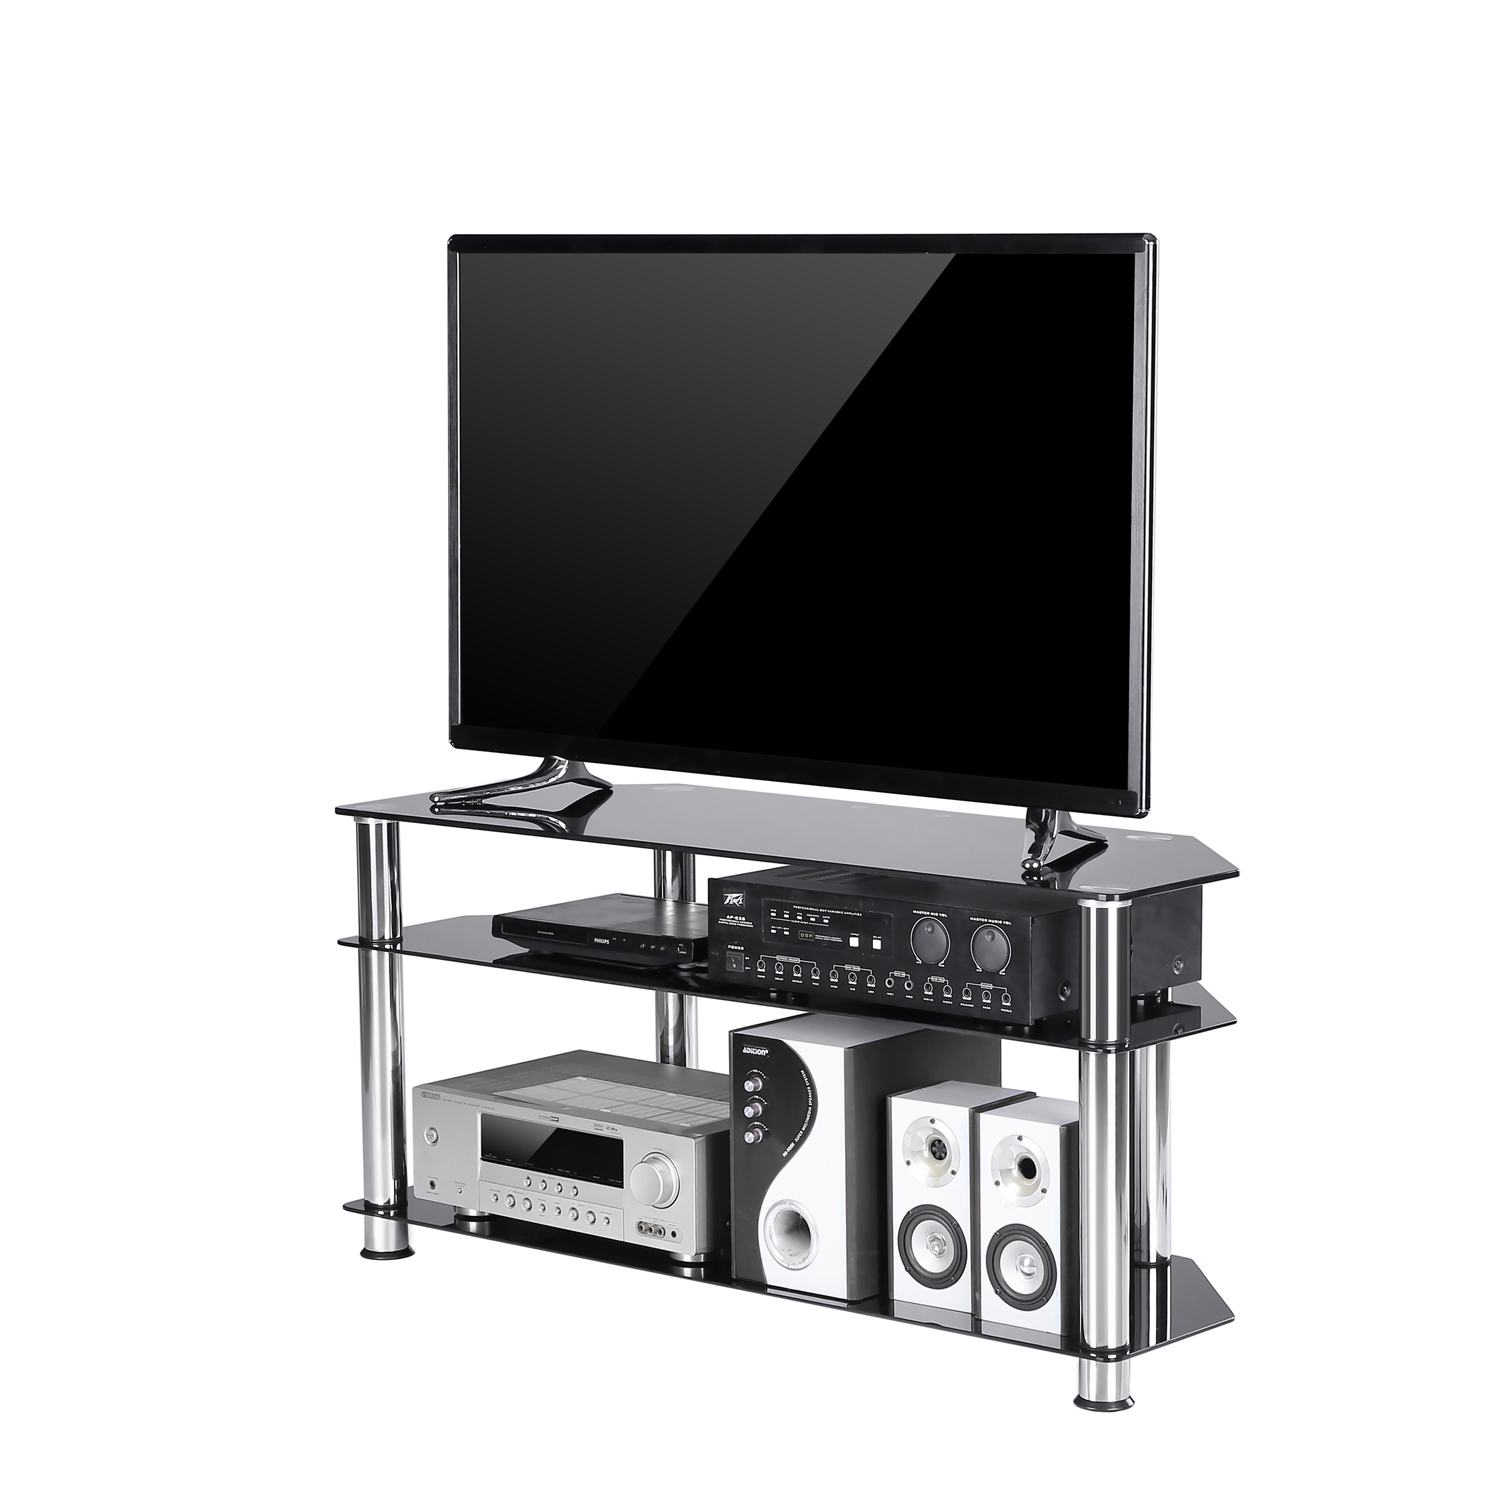 Rfiver Black Tempered Glass Corner TV Stand for up to 50 inch LCD, LED OLED Flat or Curved Screen TVs